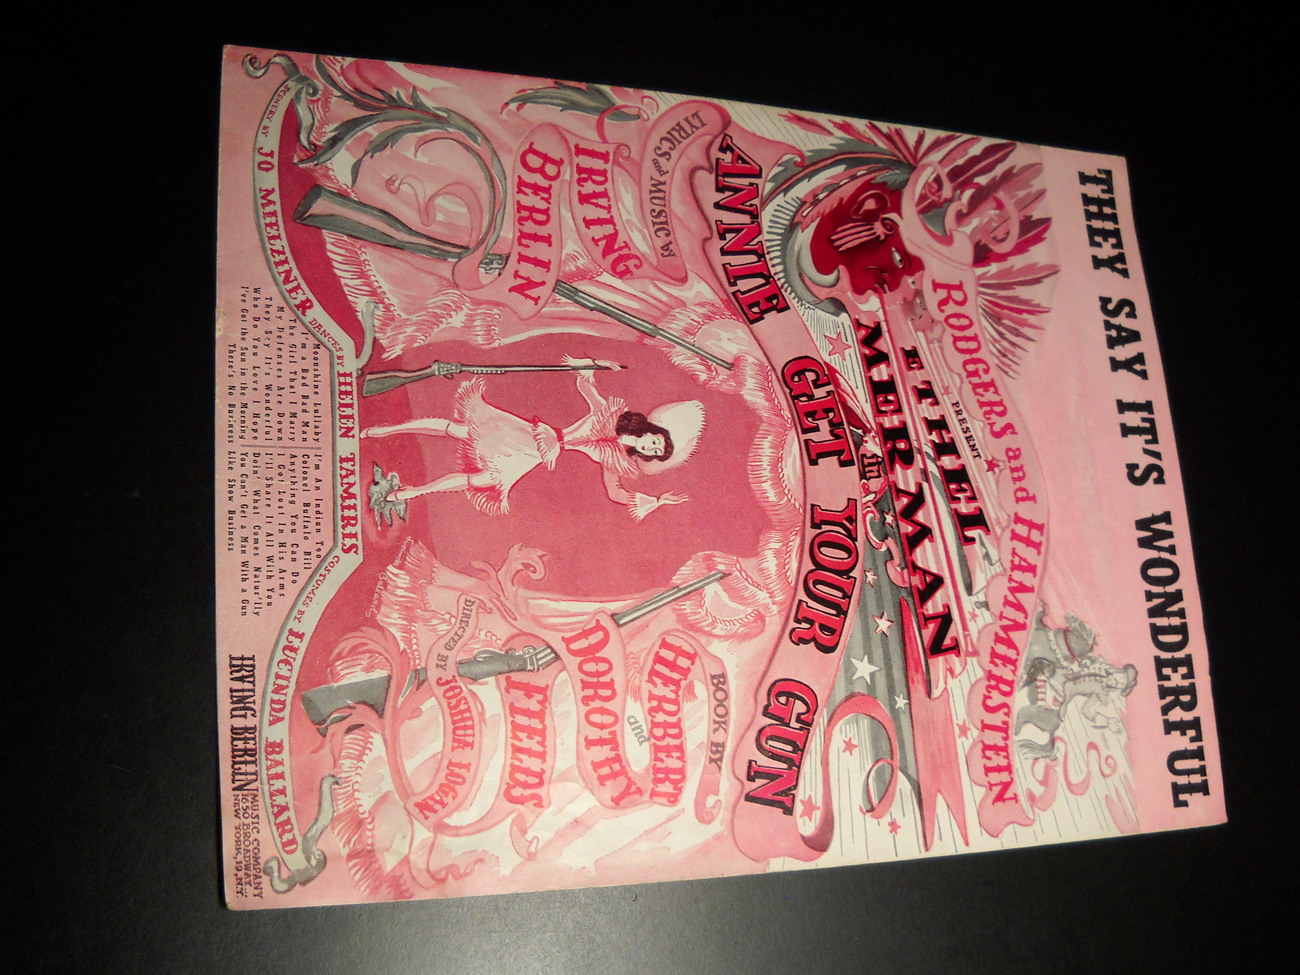 Sheet_music_they_say_it_s_wonderful_annie_get_your_gun_1946_irving_berlin_music__01